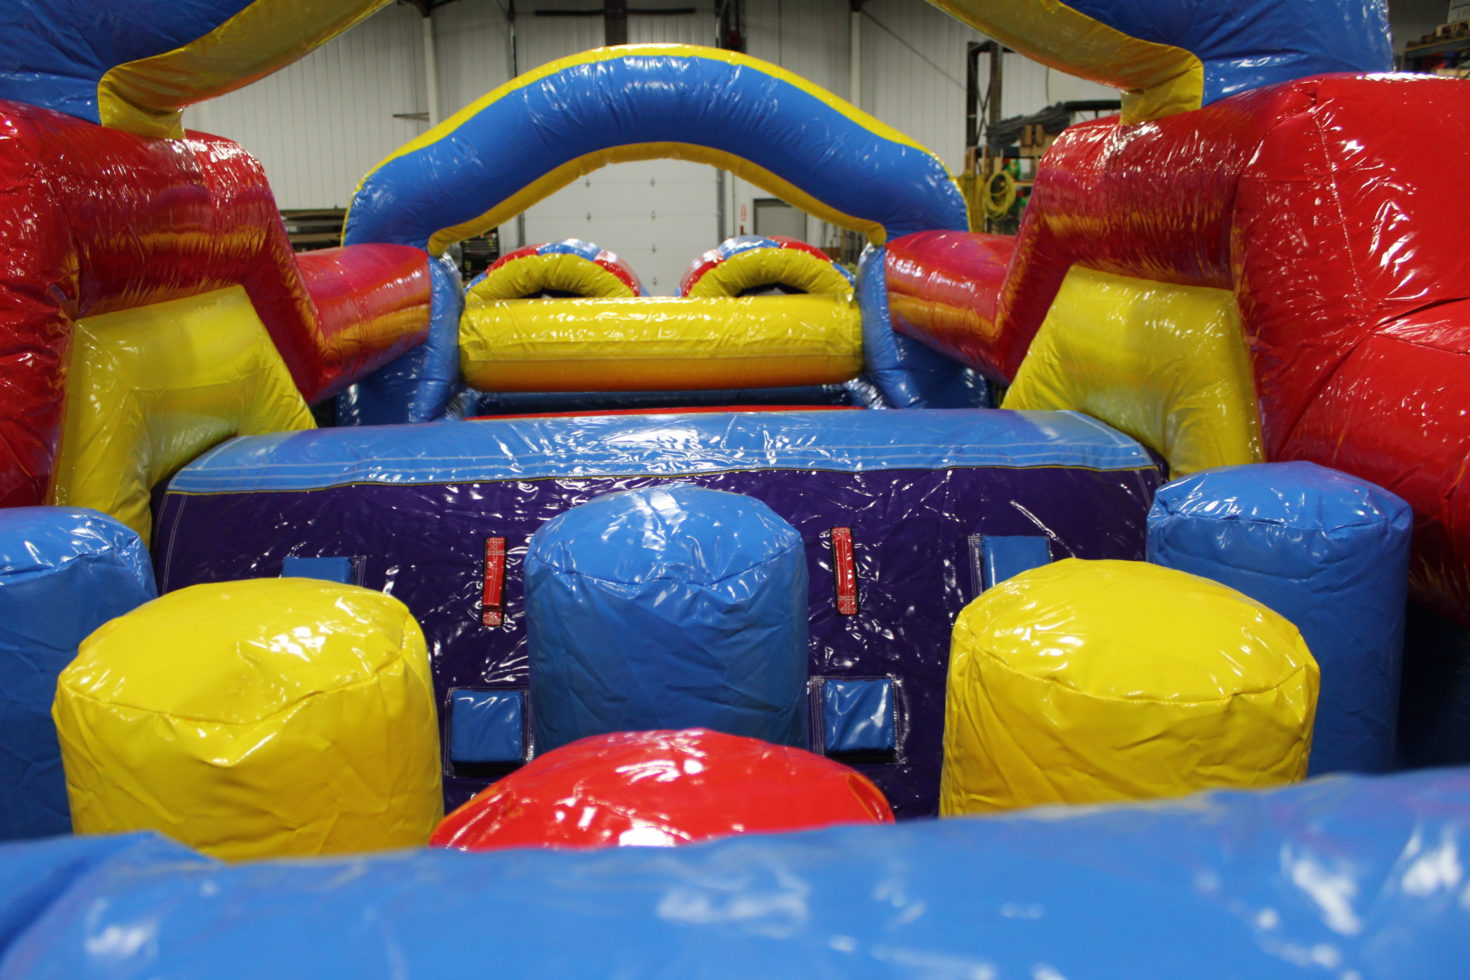 inside obstacle course inflatable